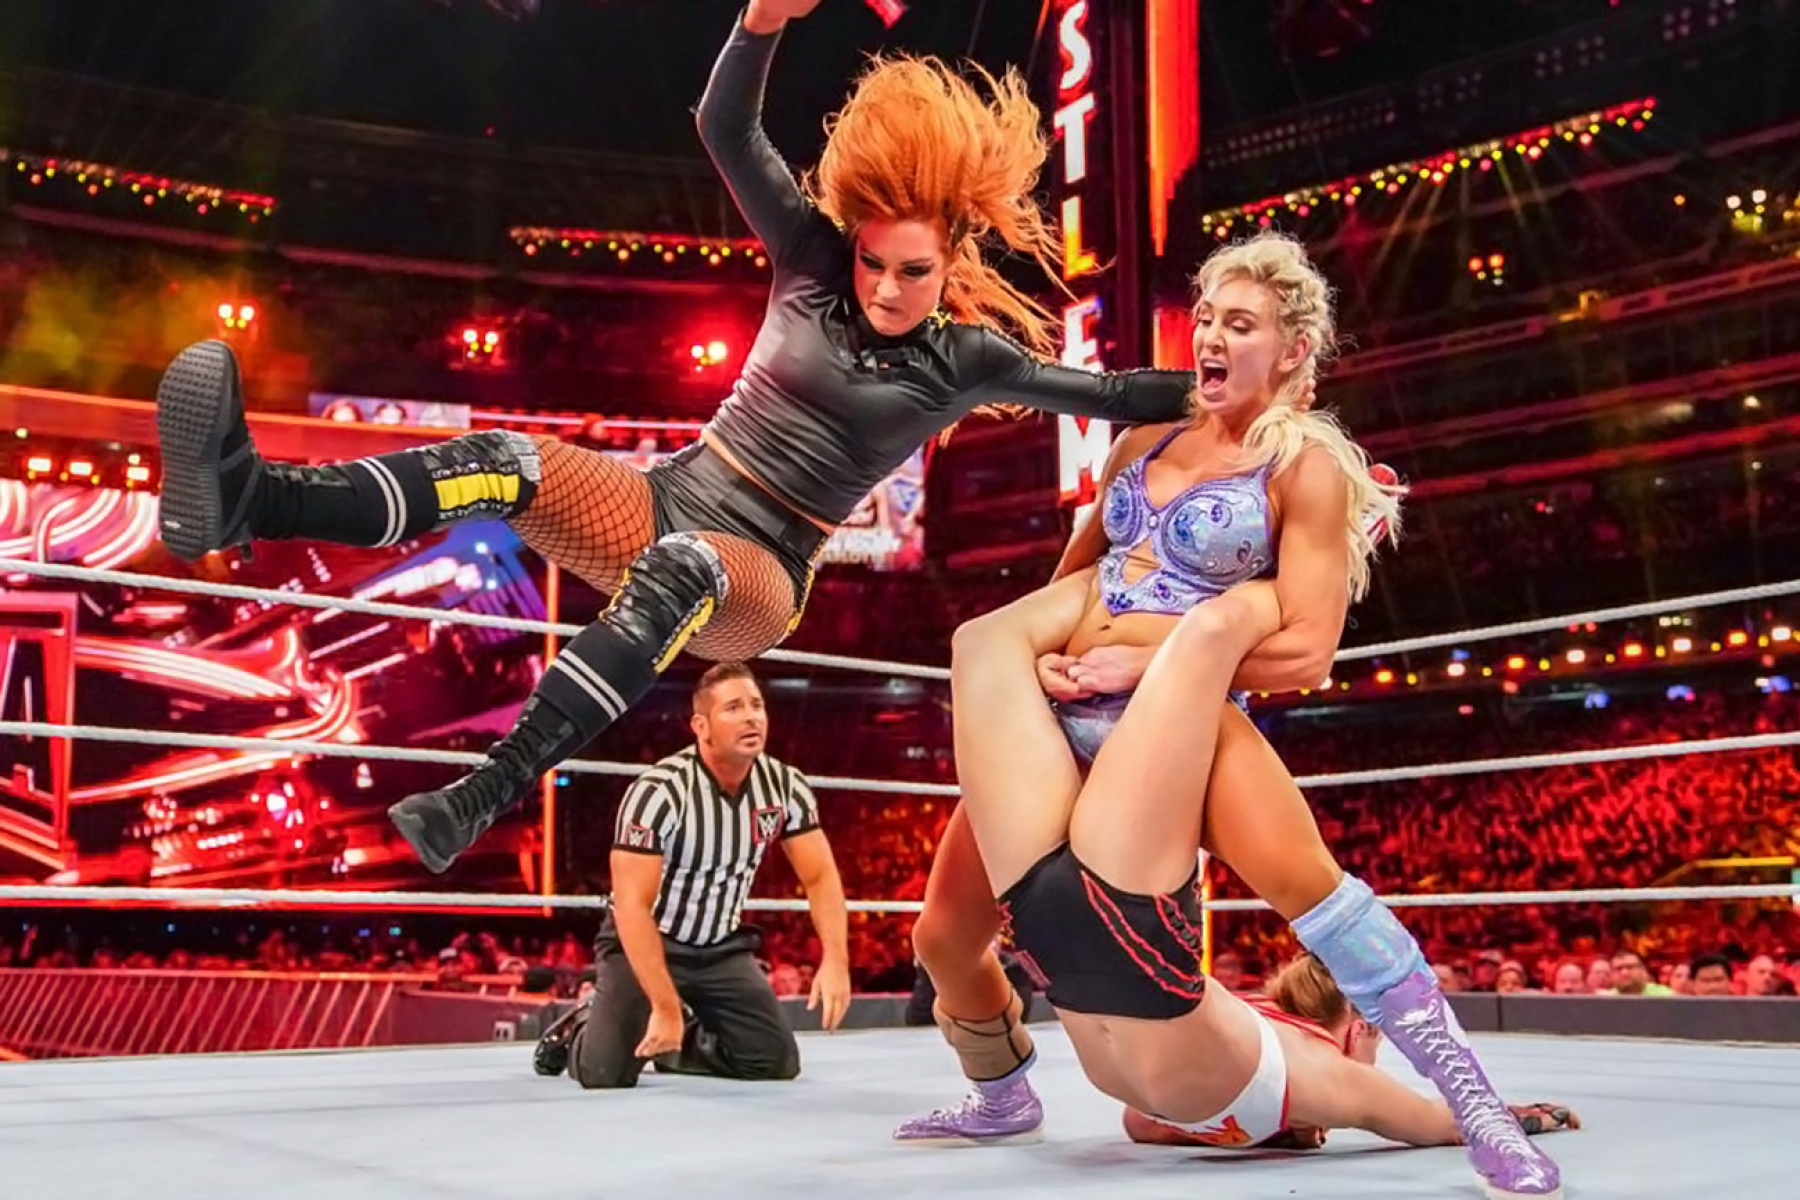 Wrestlemania 35: Ronda Rousey, Becky Lynch, Charlotte Flair - Rolling Stone